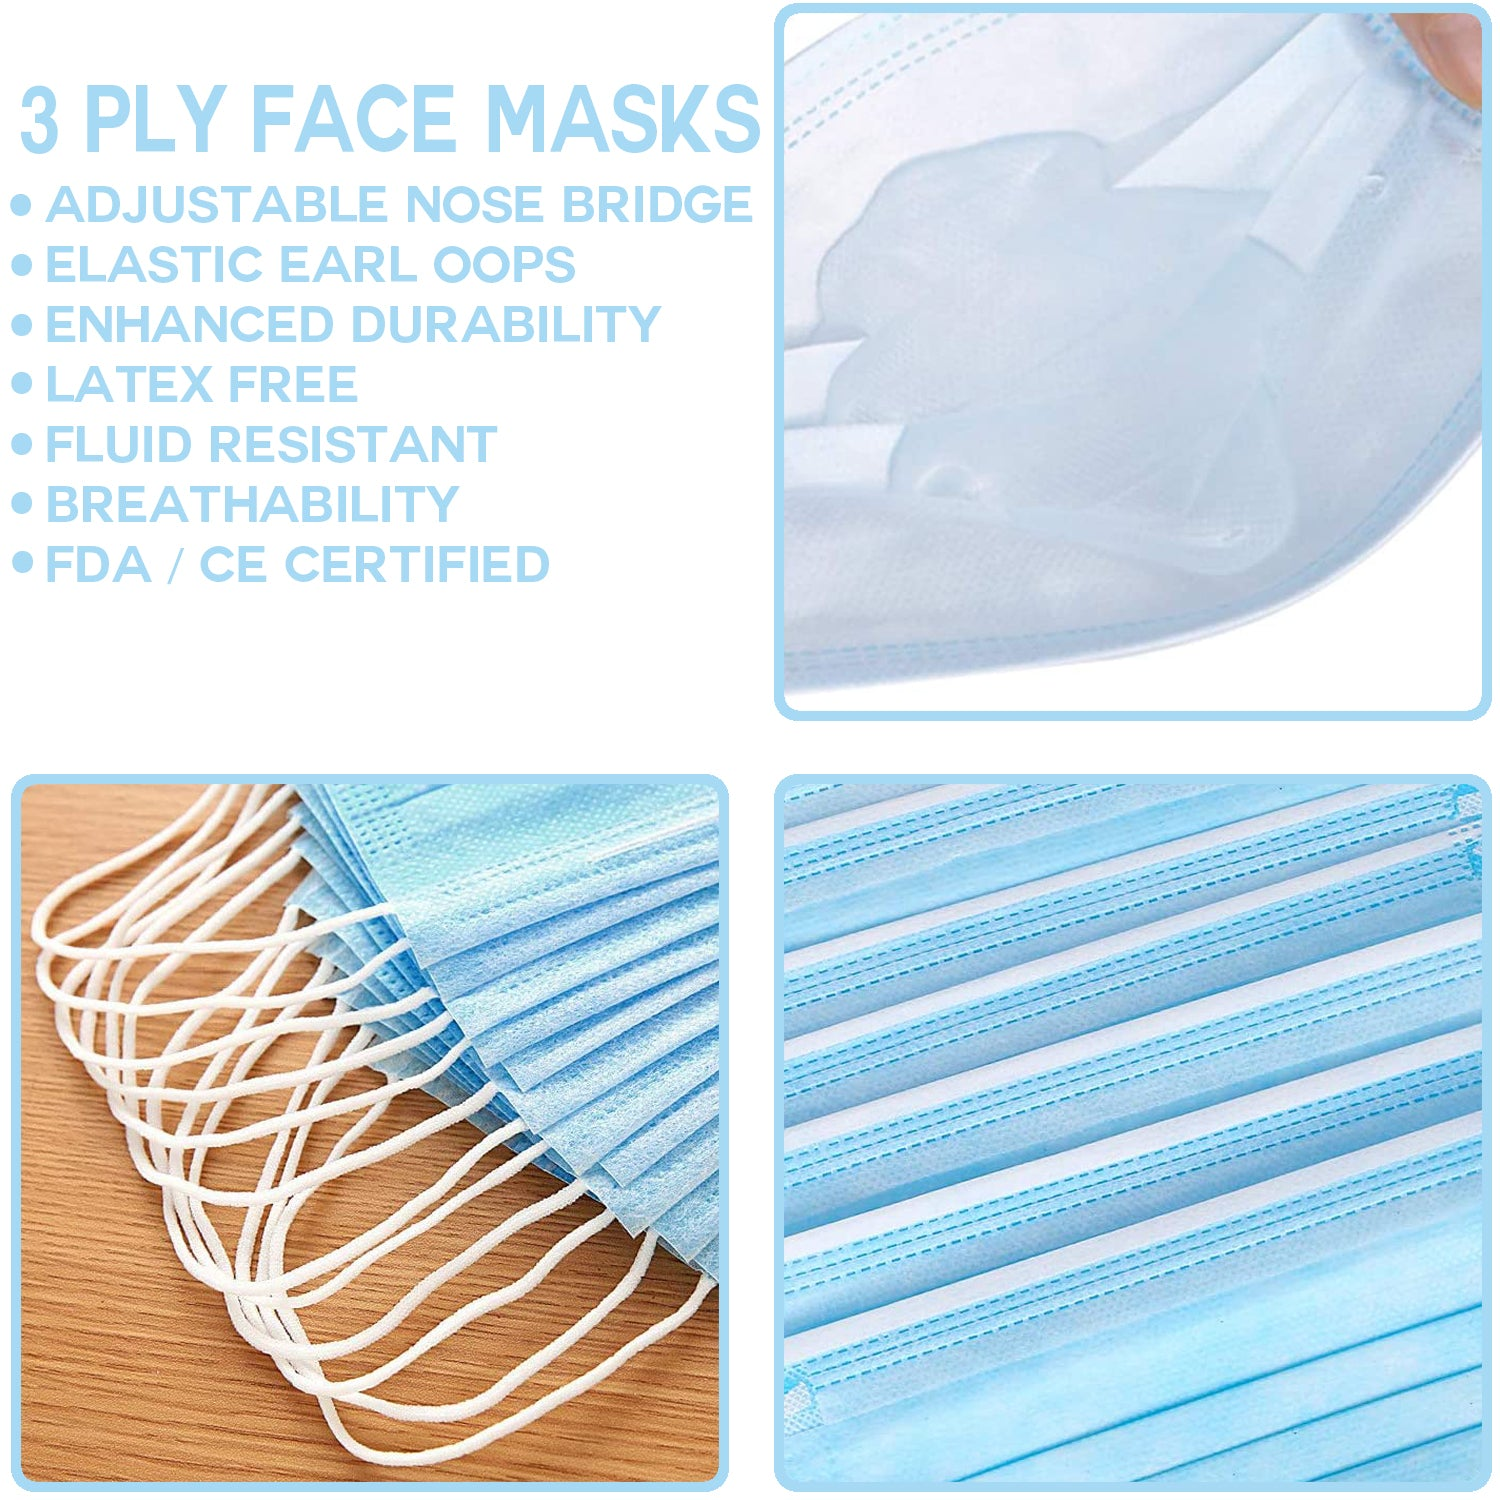 Childrens 3ply Disposable Facemasks